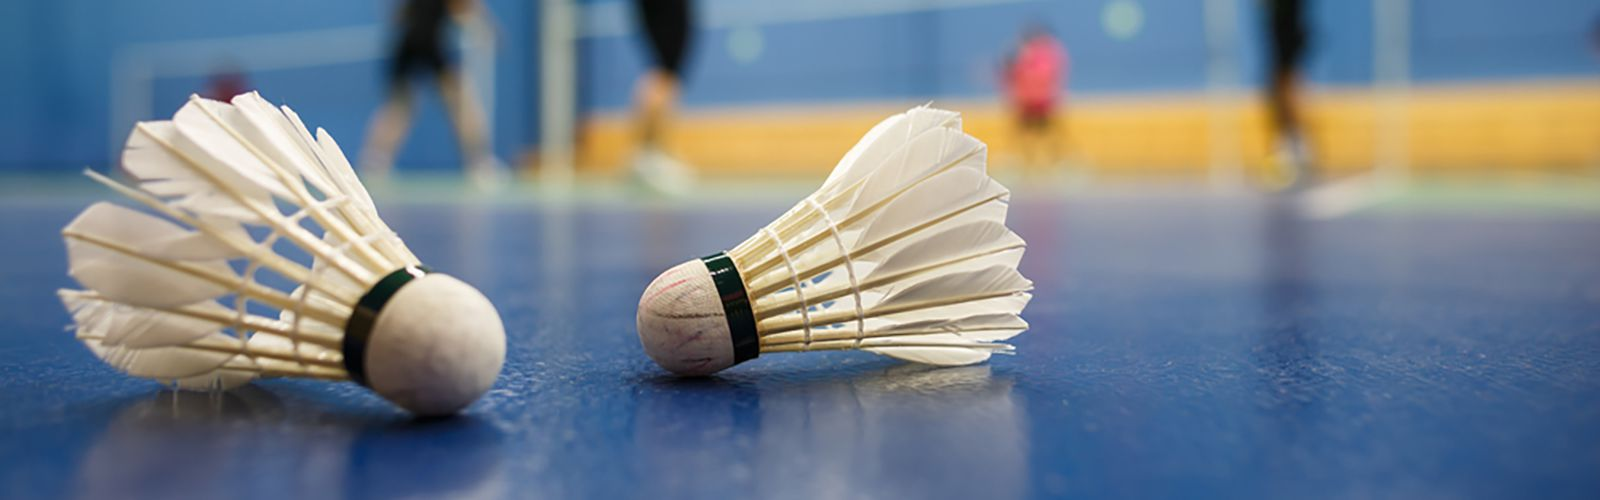 header-badminton.jpg